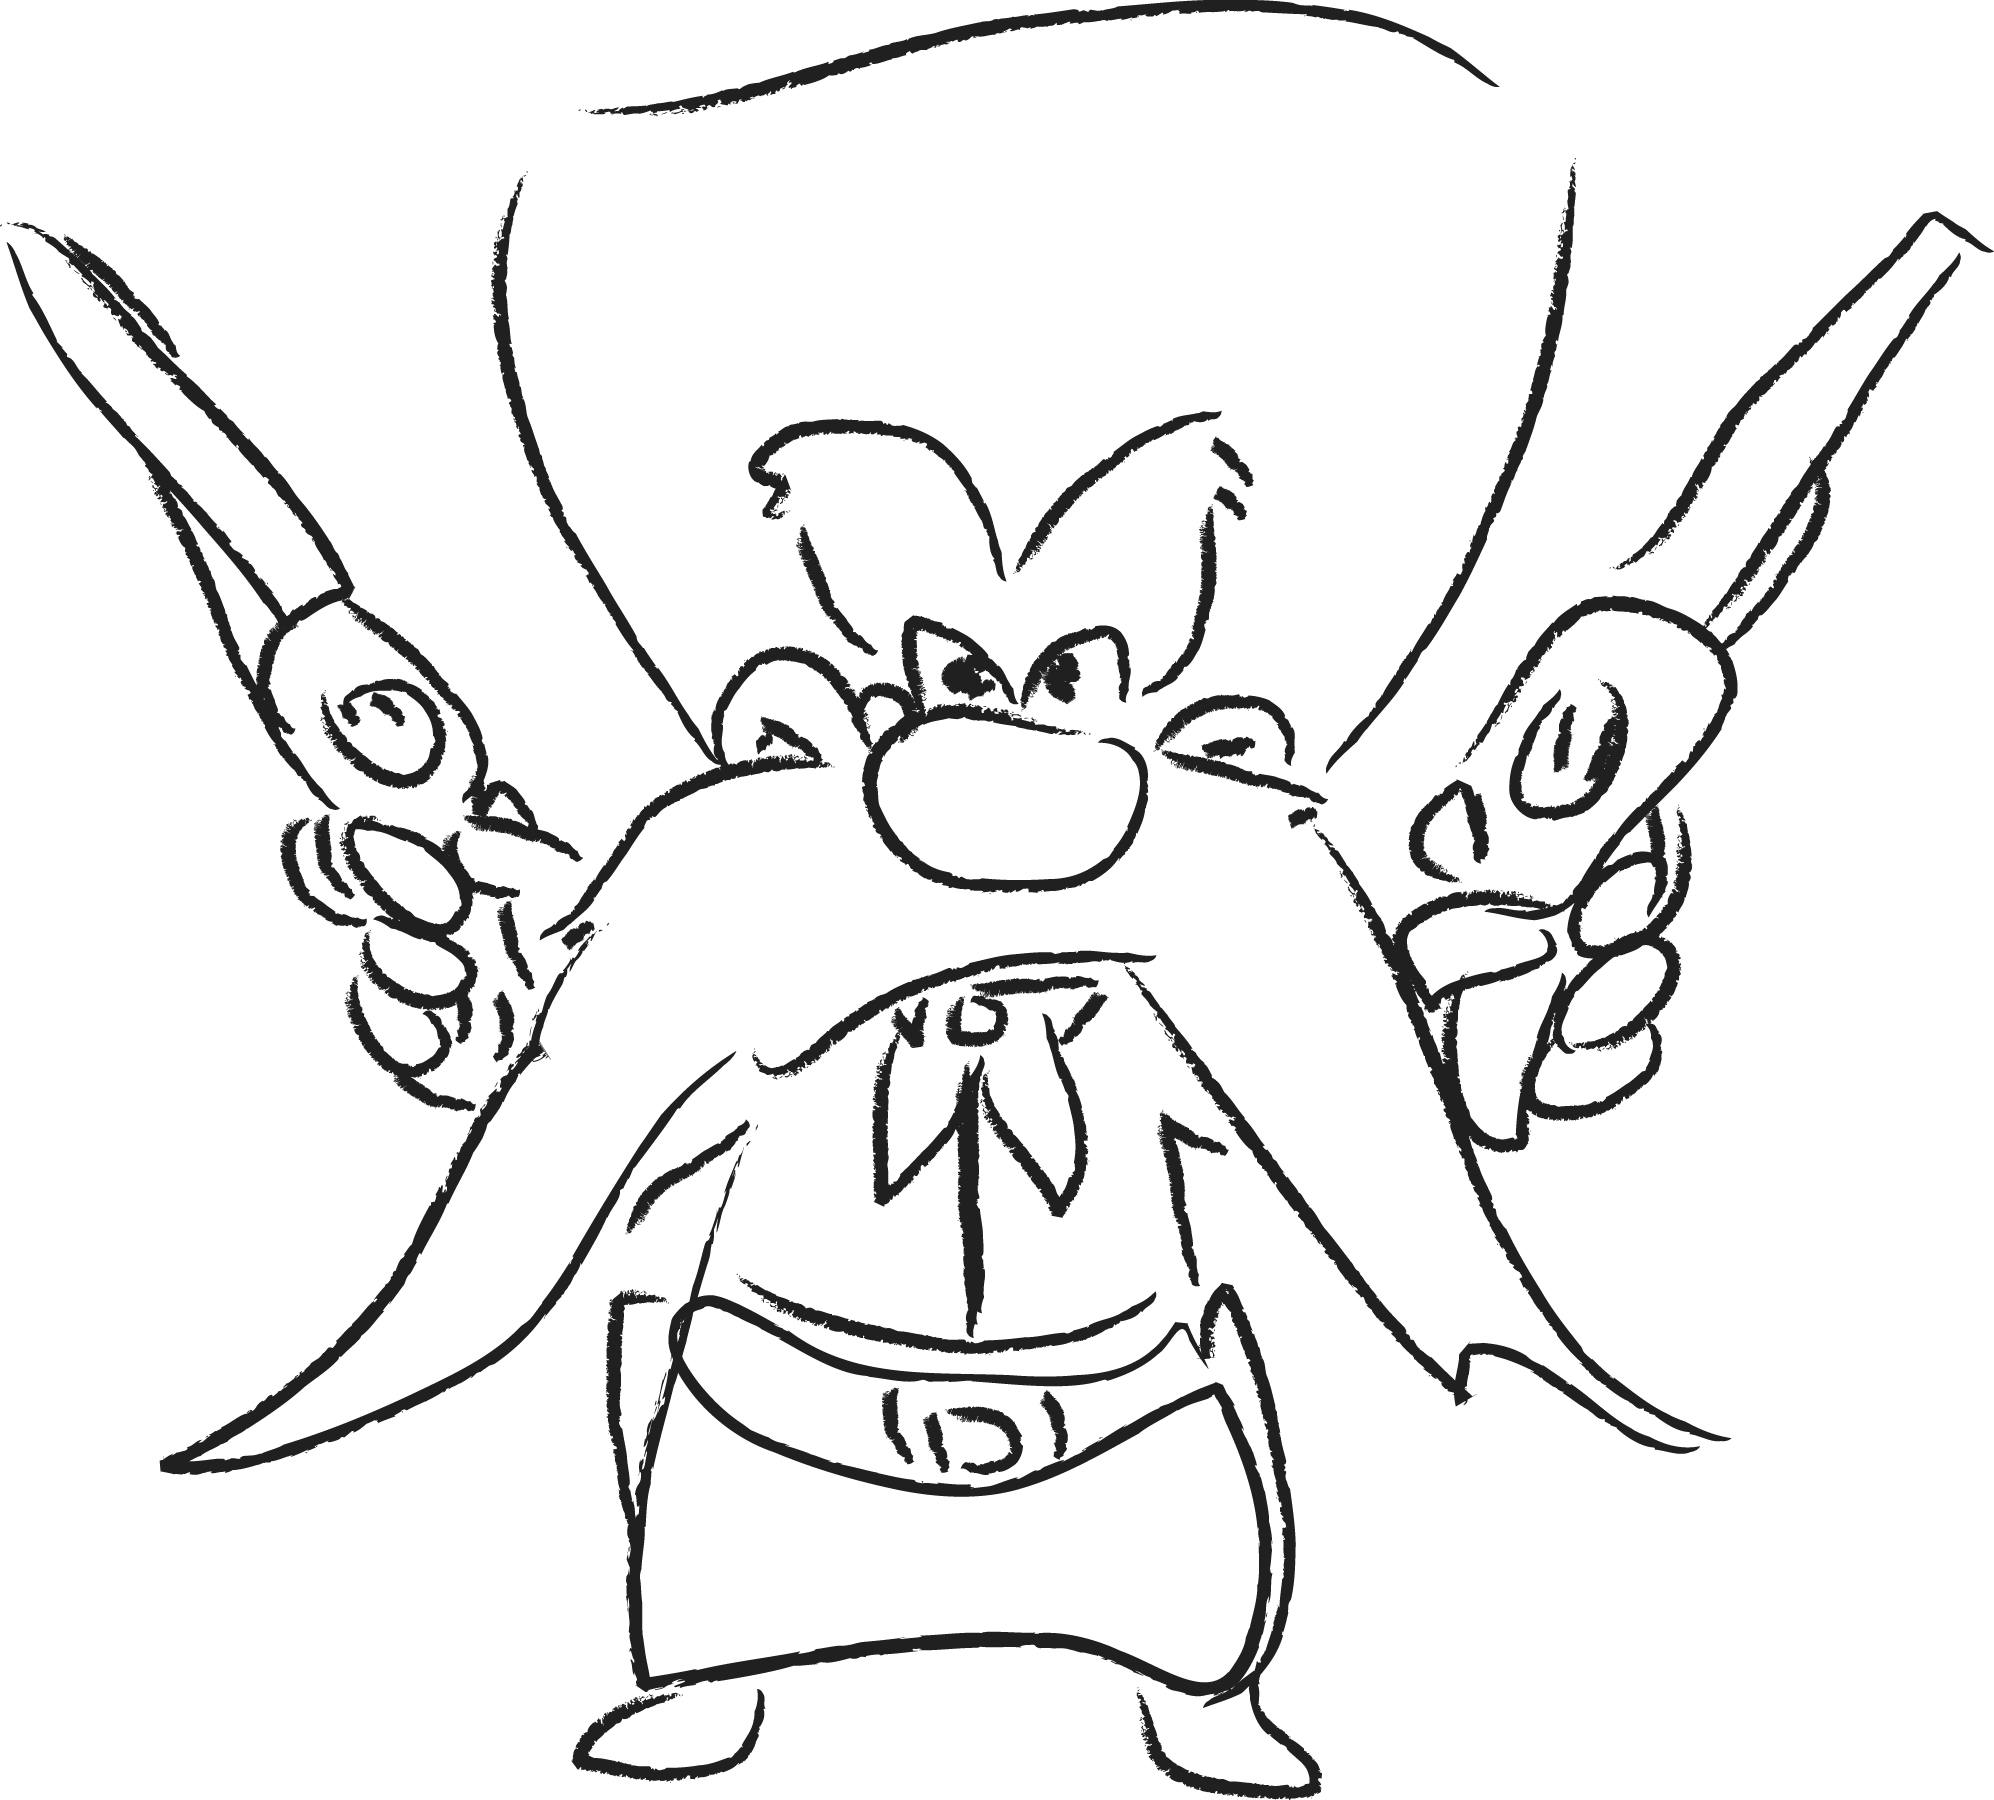 1994x1800 Drawing Drawings Of Gangster Cartoon Characters Together With